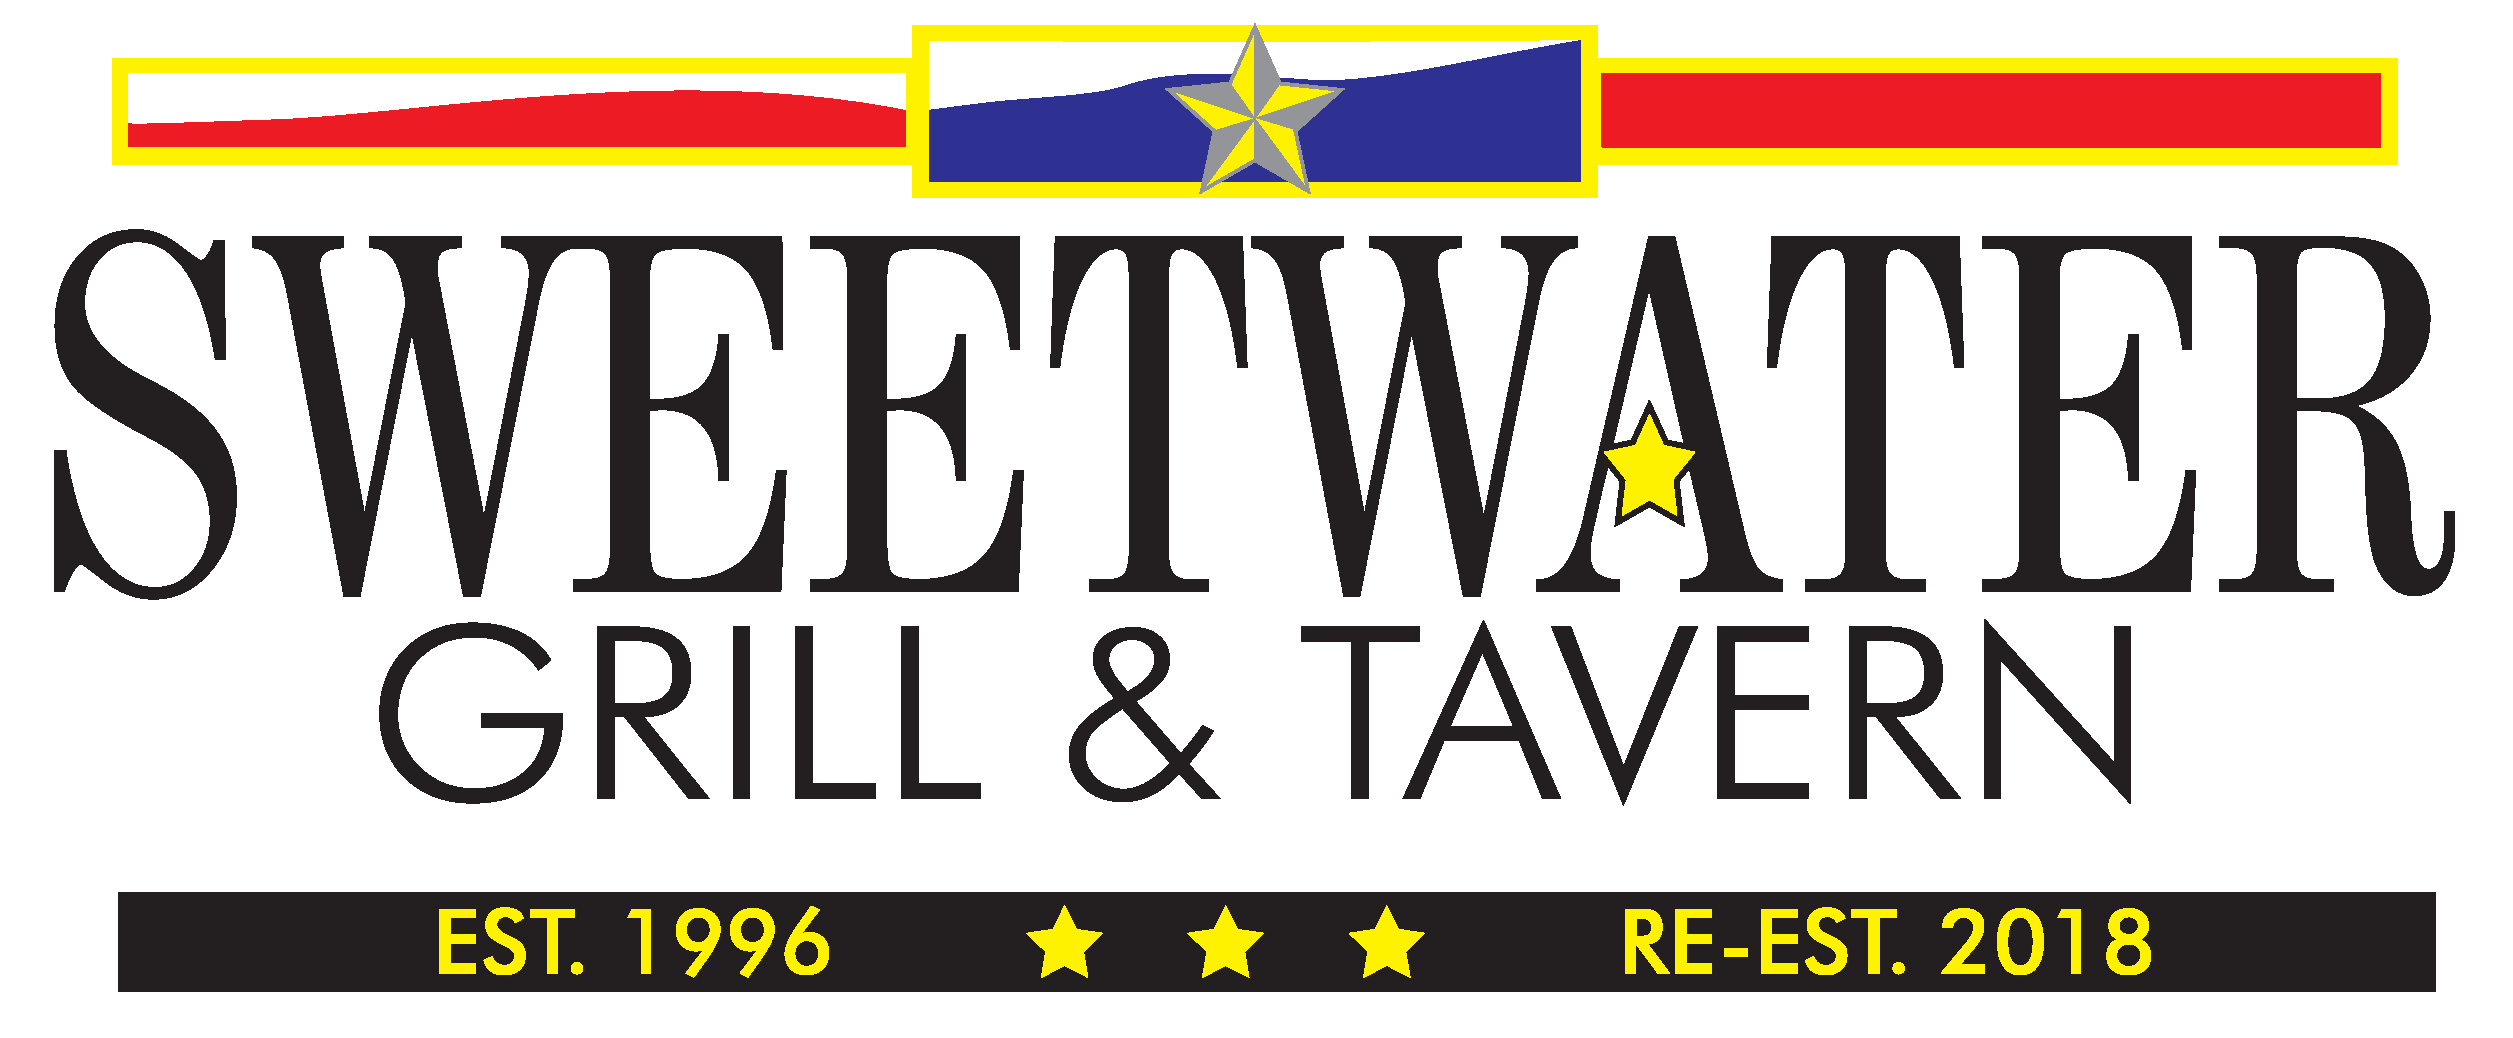 Sweetwater Grill & Tavern